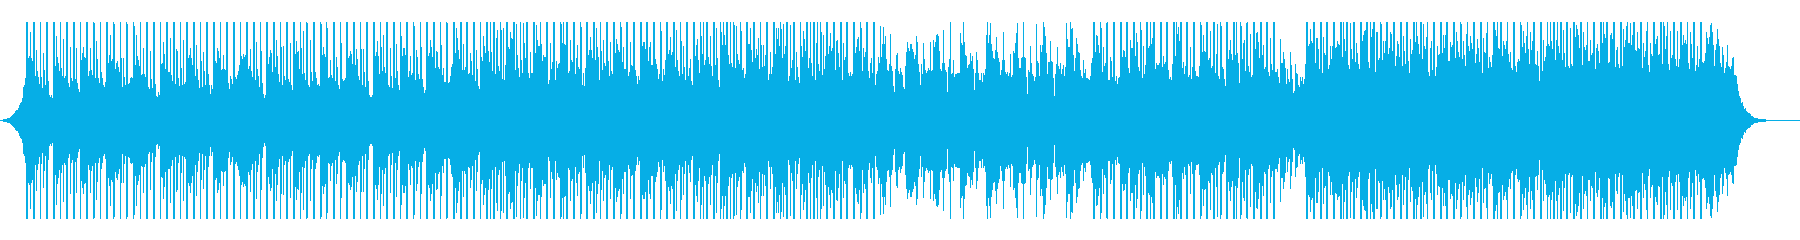 University Education's reproduced waveform